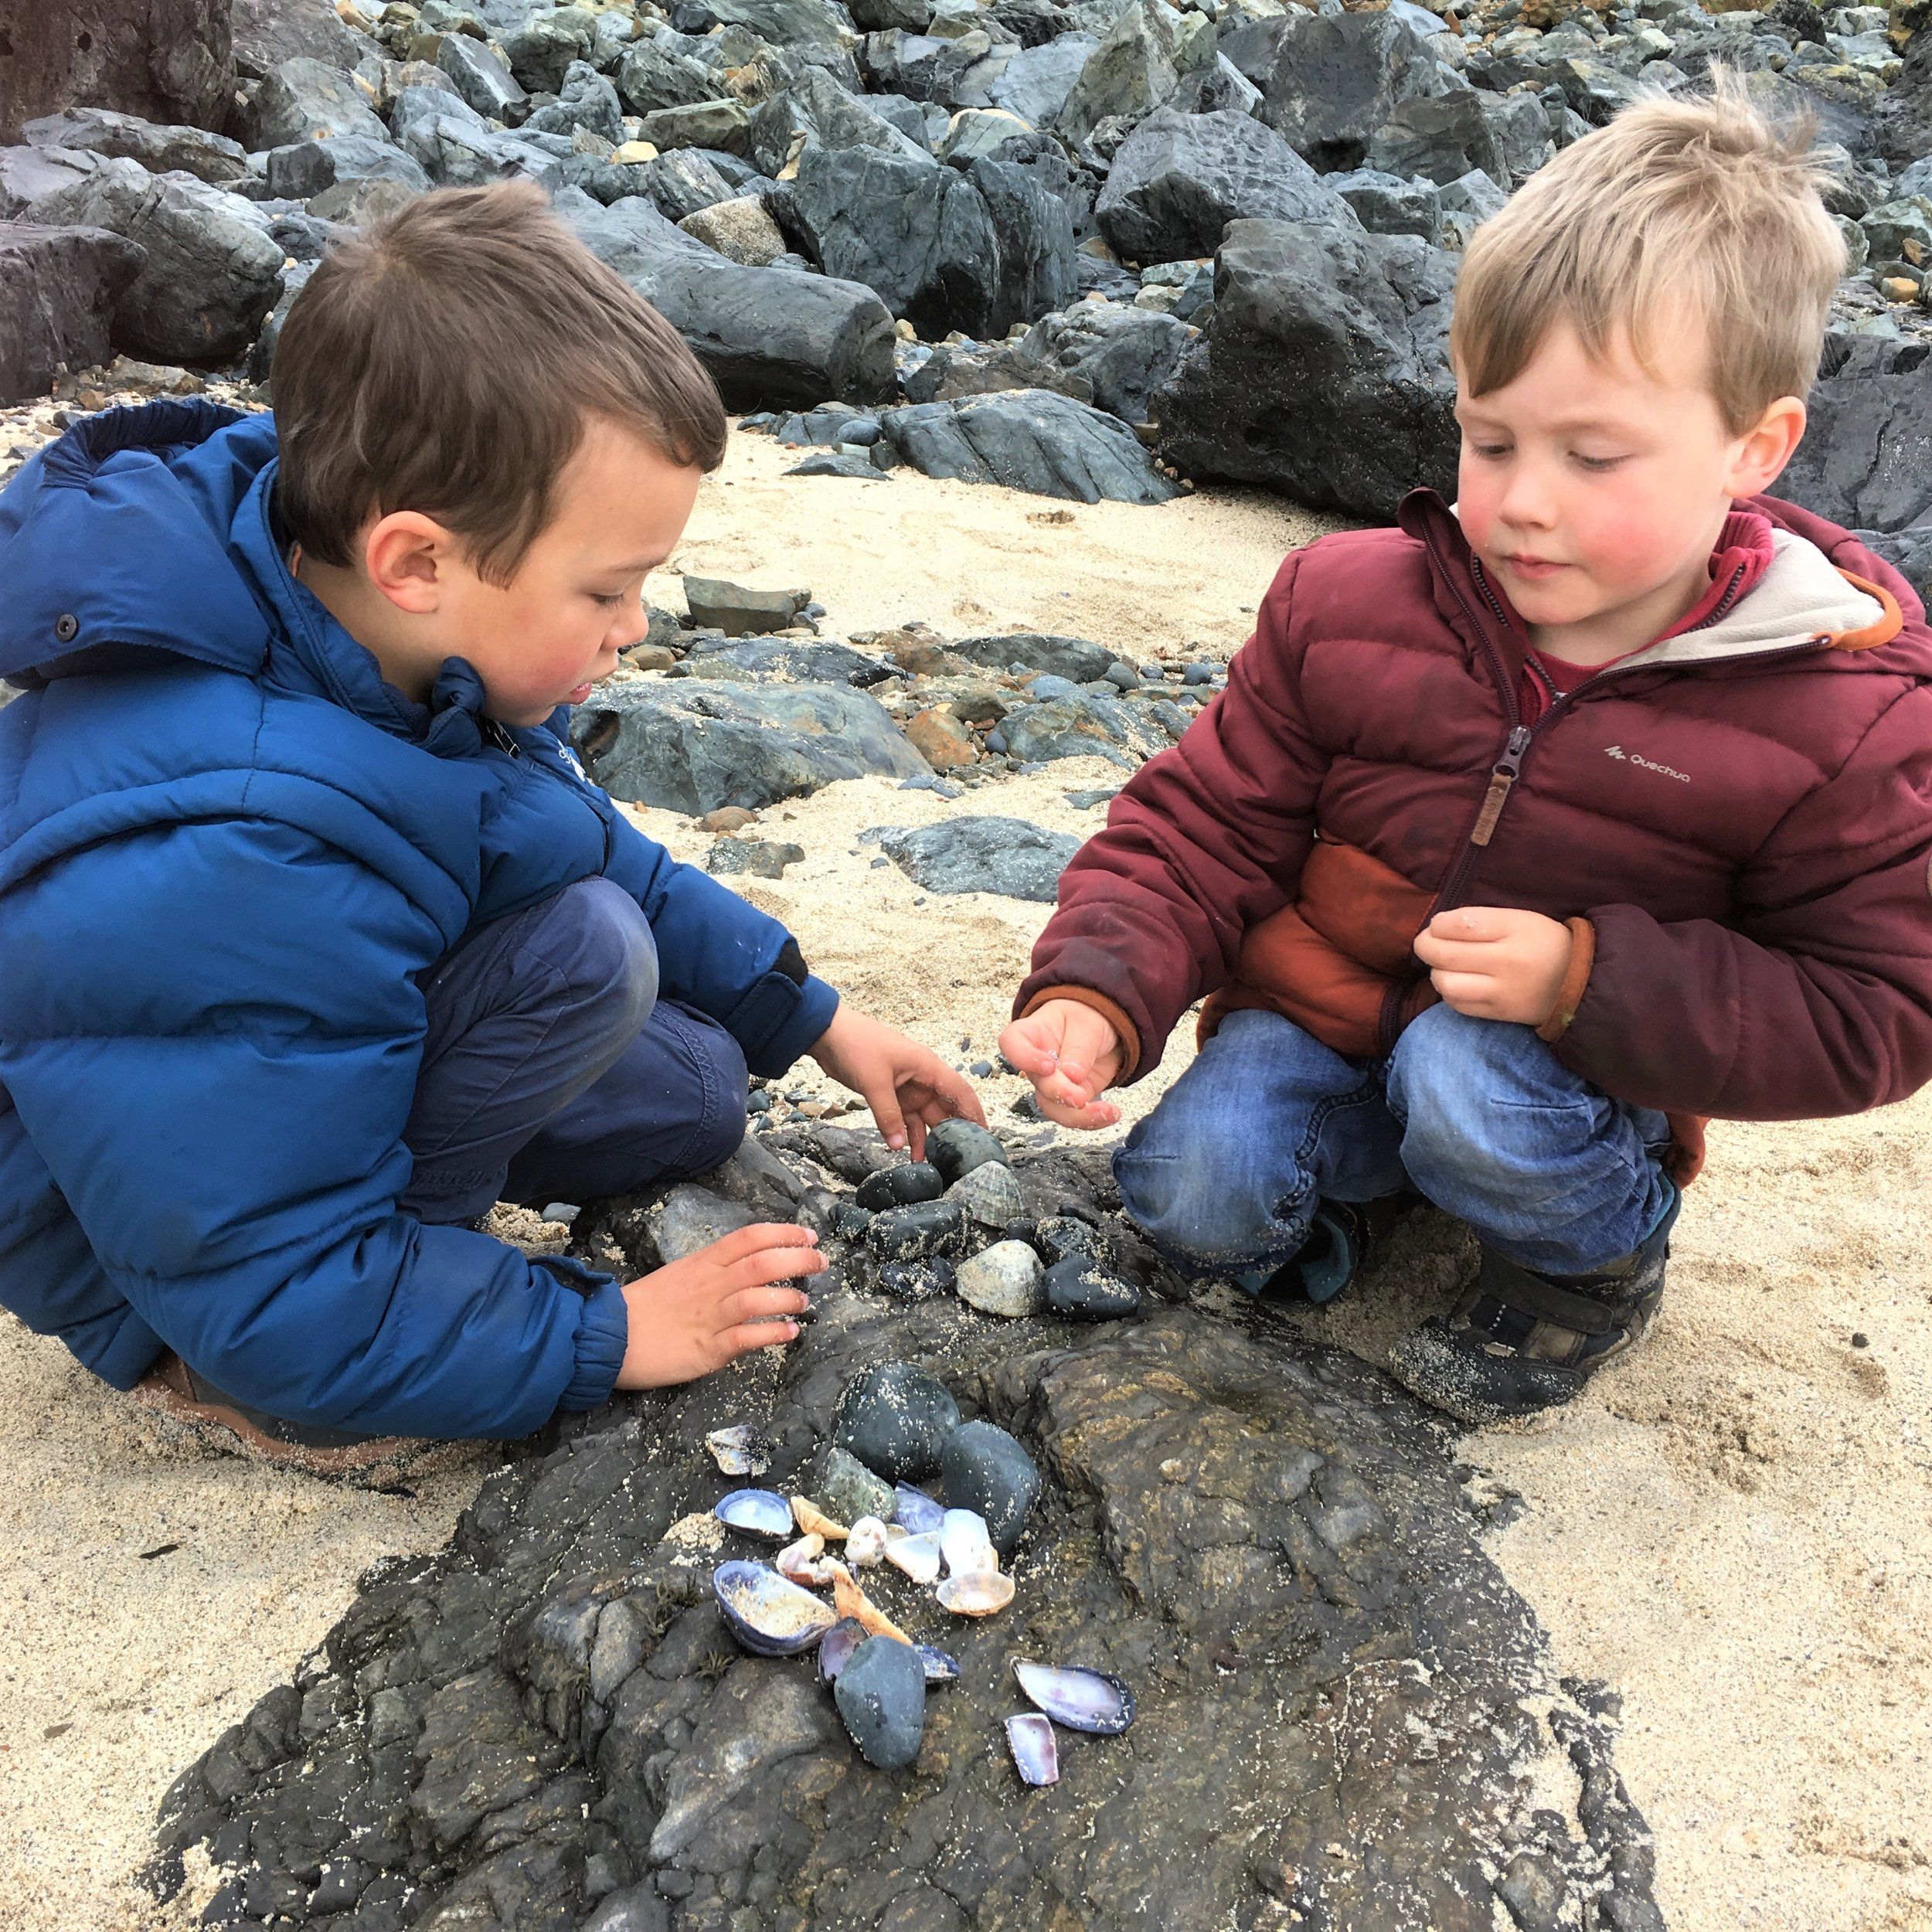 Importance of getting children out in nature